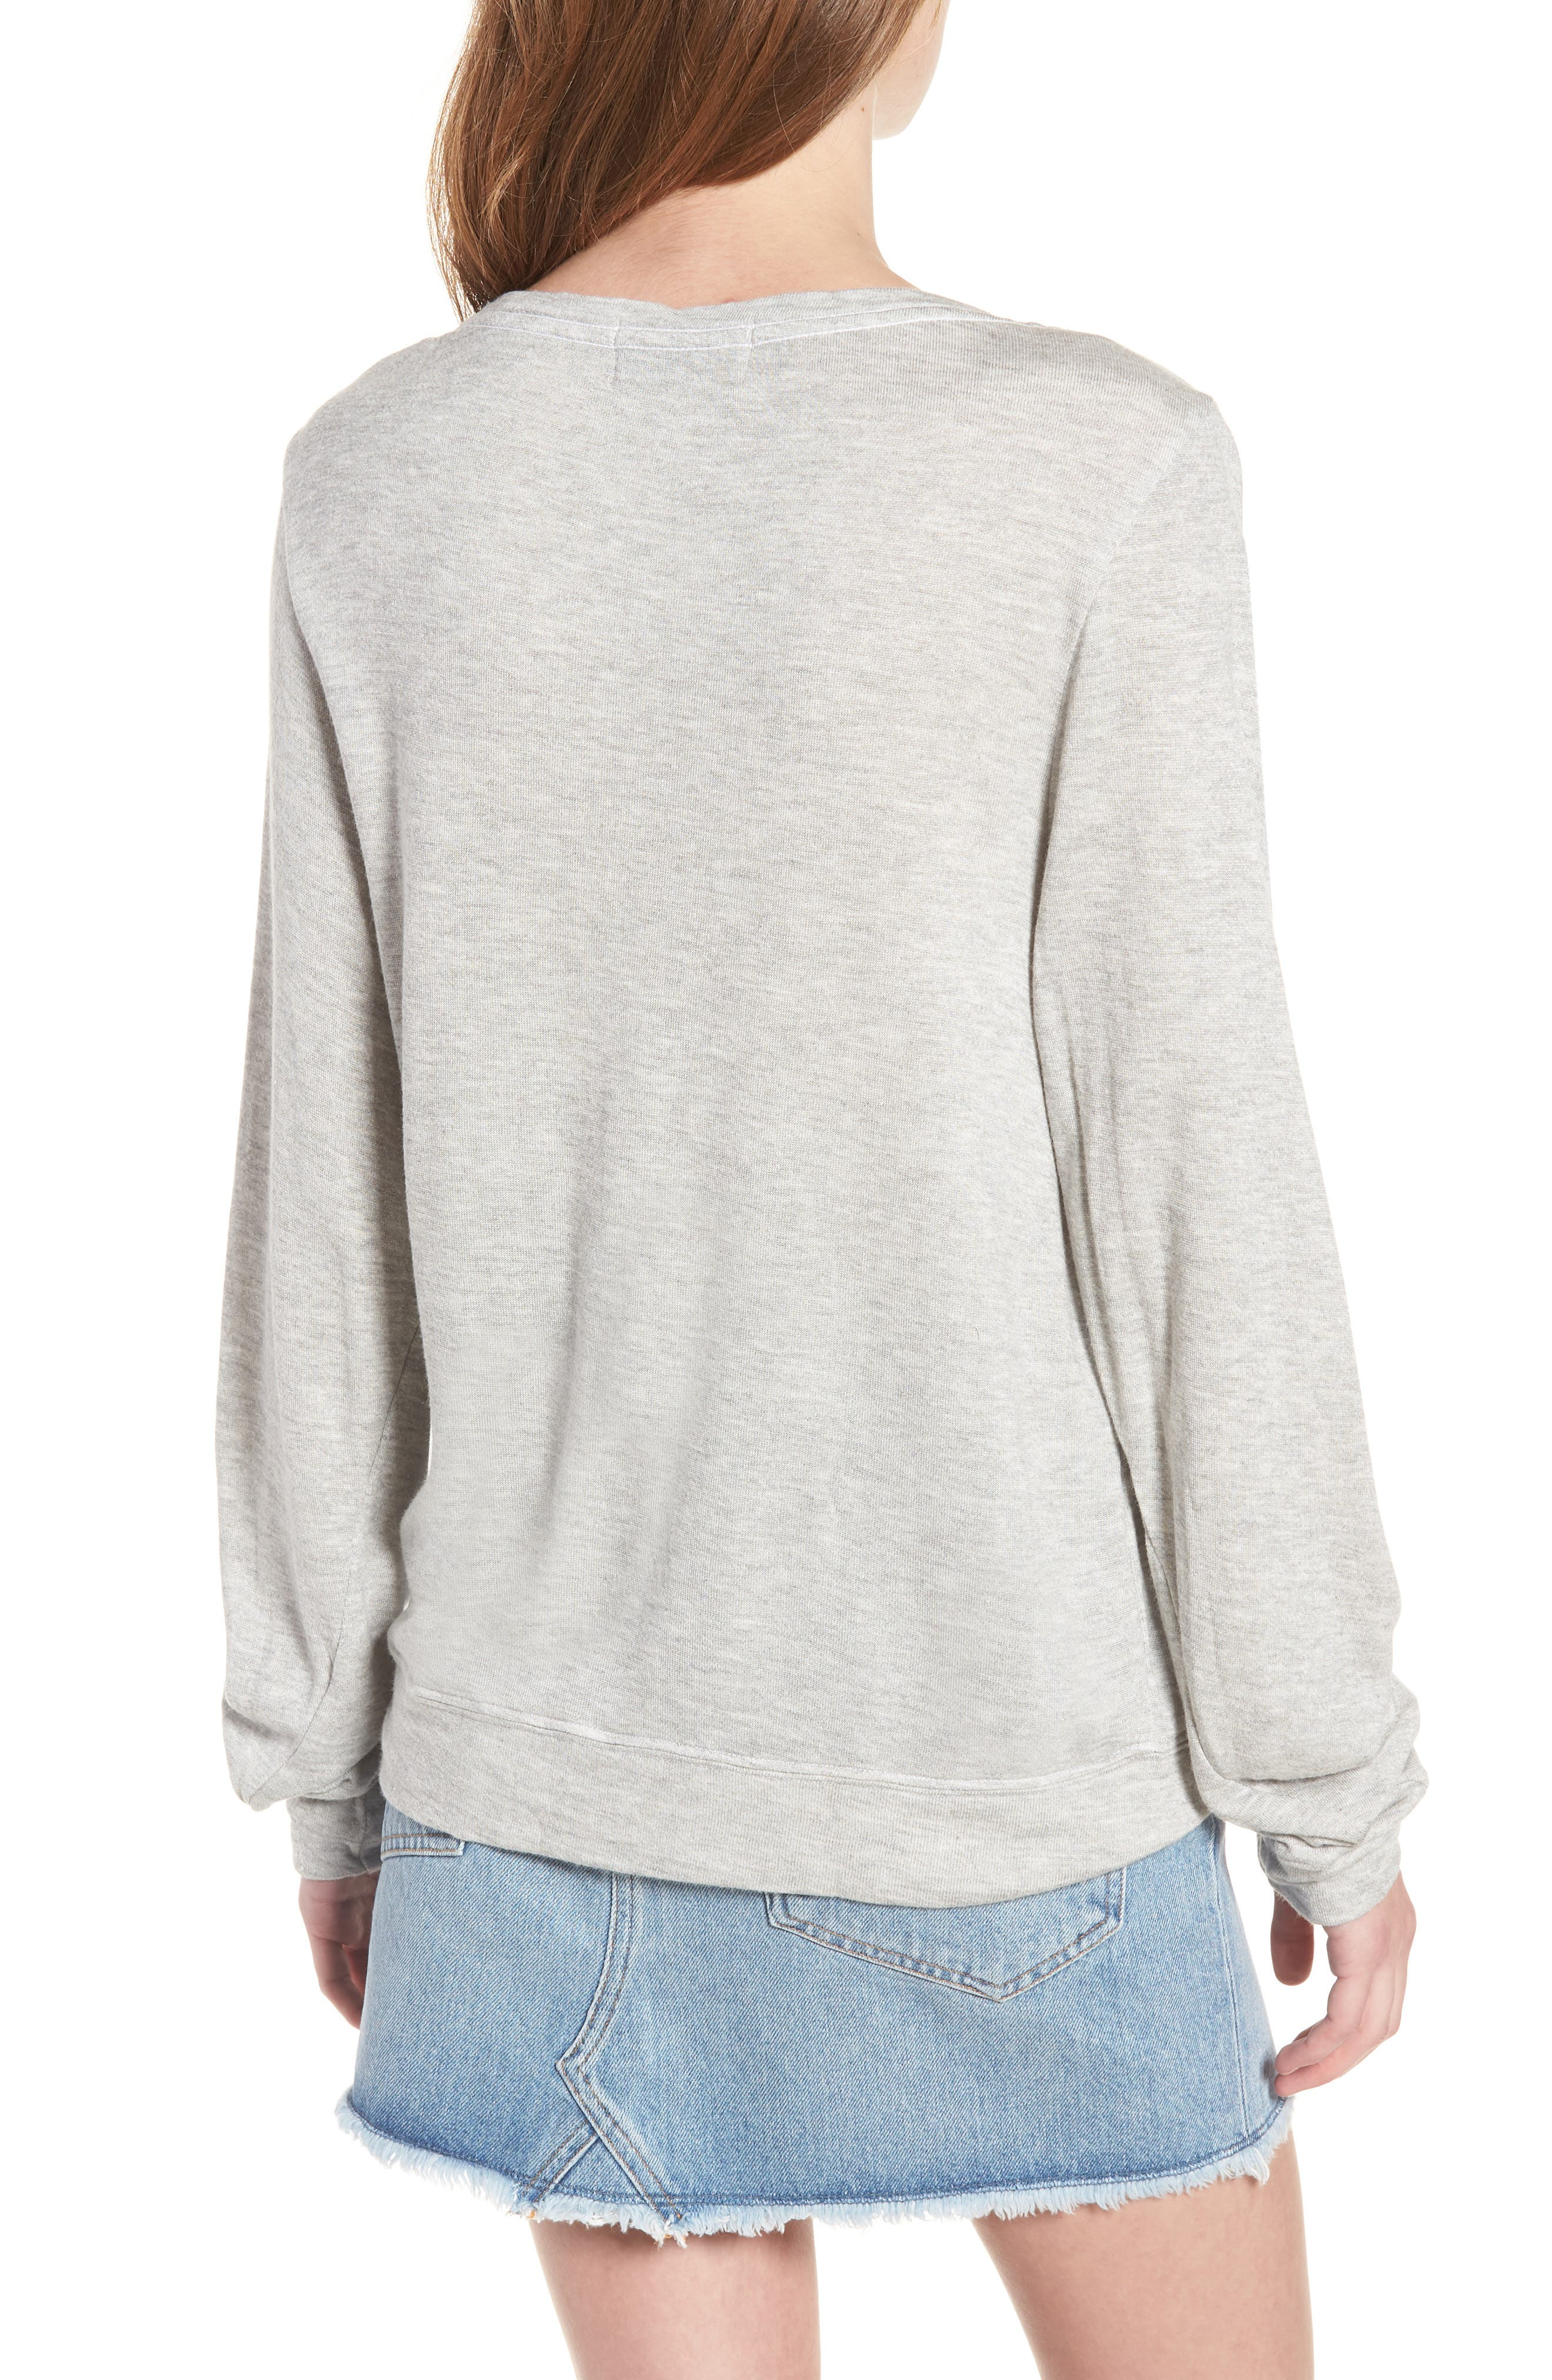 Dogs - Baggy Beach Jumper Pullover,                             Alternate thumbnail 2, color,                             020